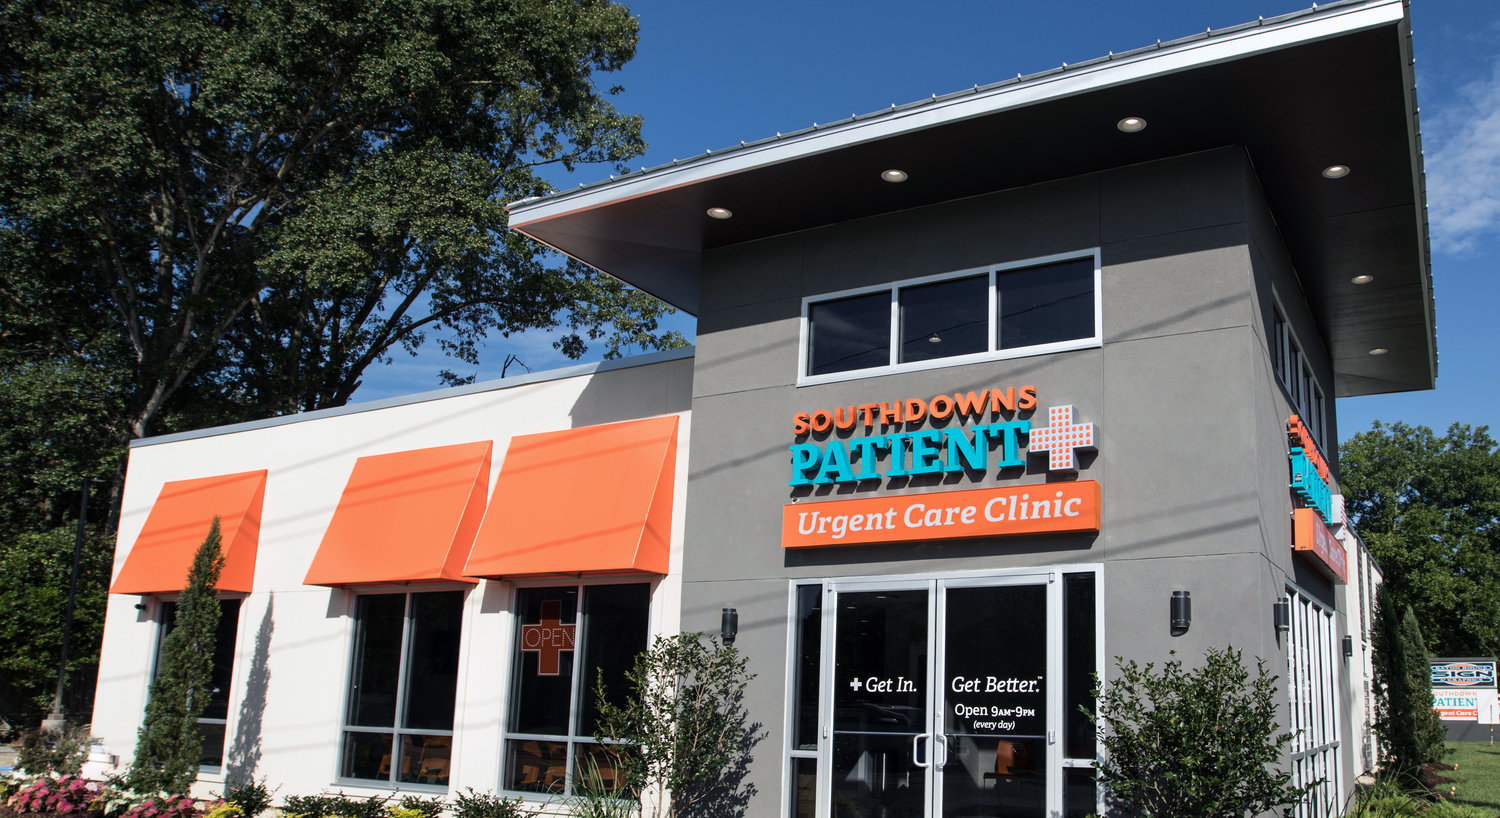 Southdowns Patient Plus Urgent Care Clinic Baton Rouge